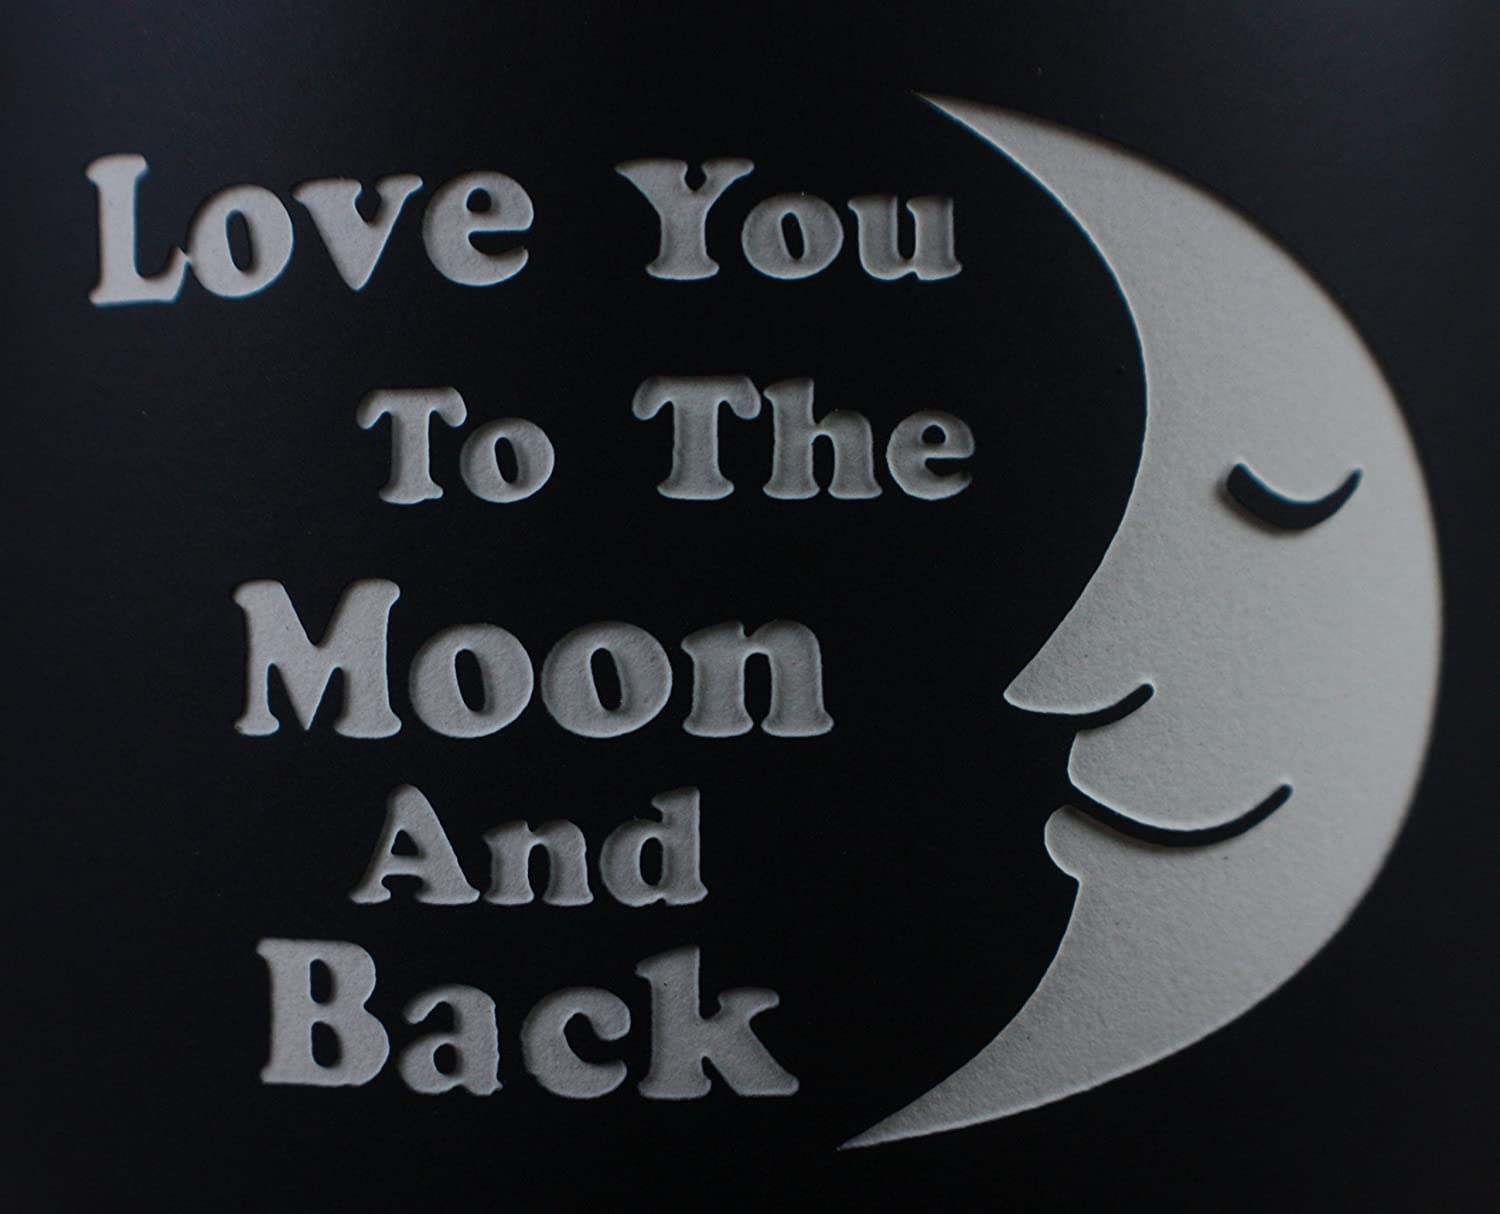 Love You to the Moon and Back 14oz Engraved Graphic Coffee Mug//Tea Cup By Celery Street for Birthdays and Anniversaries Bistro Black